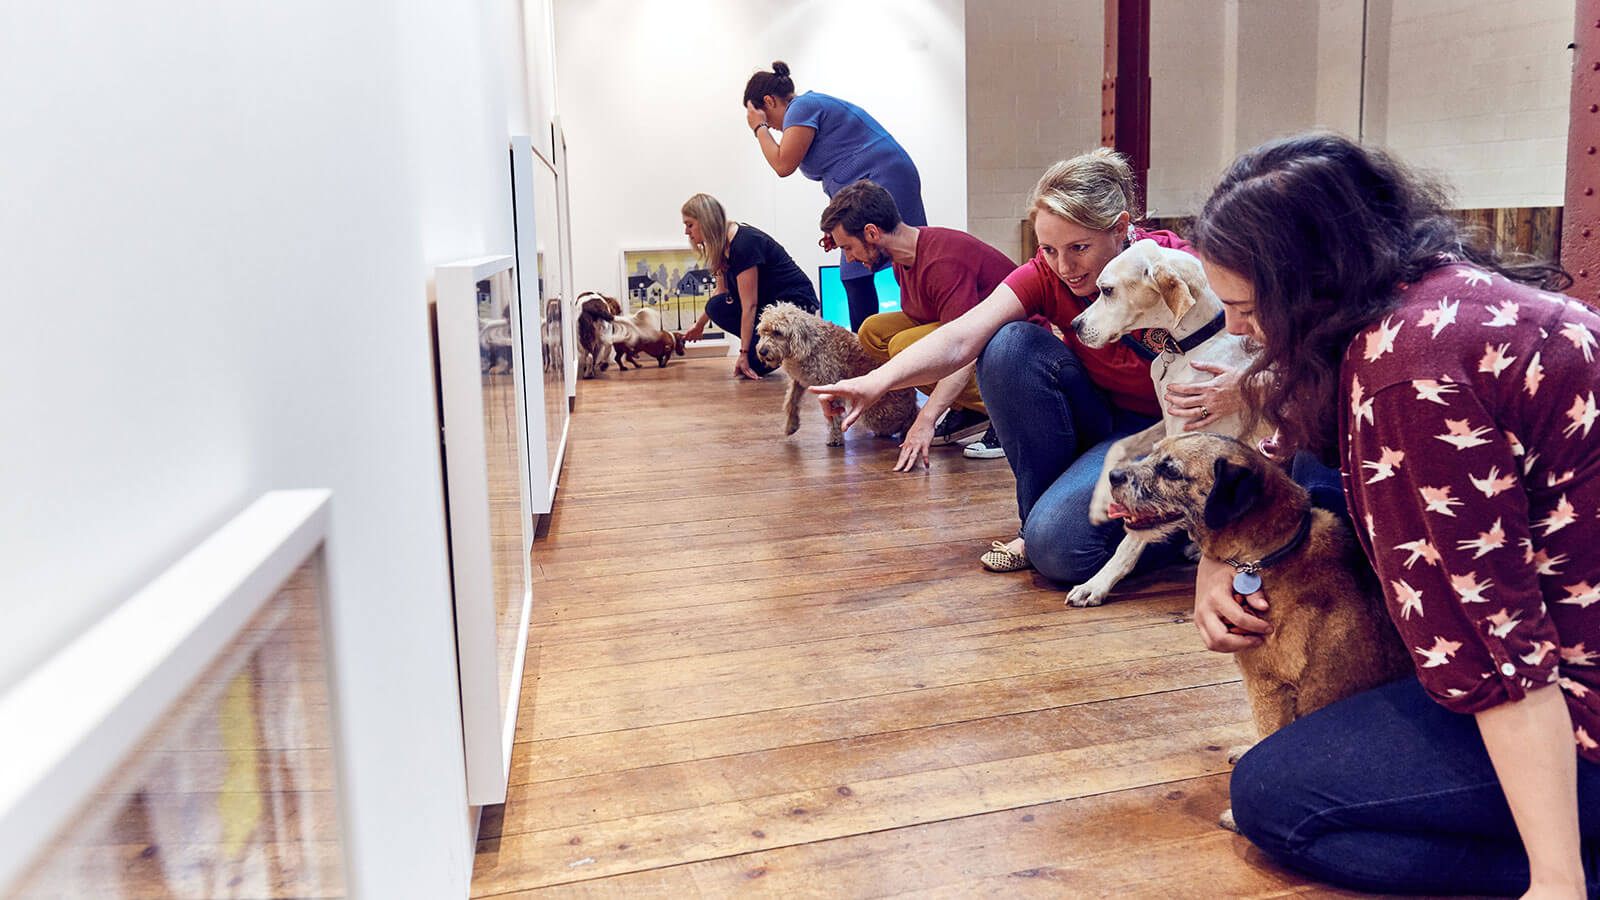 Five dogs and their owners line up at the gallery wall to study the artworks on display at MORE TH>N's Play More interactive art exhibition for dogs. Copyright MORE THAN